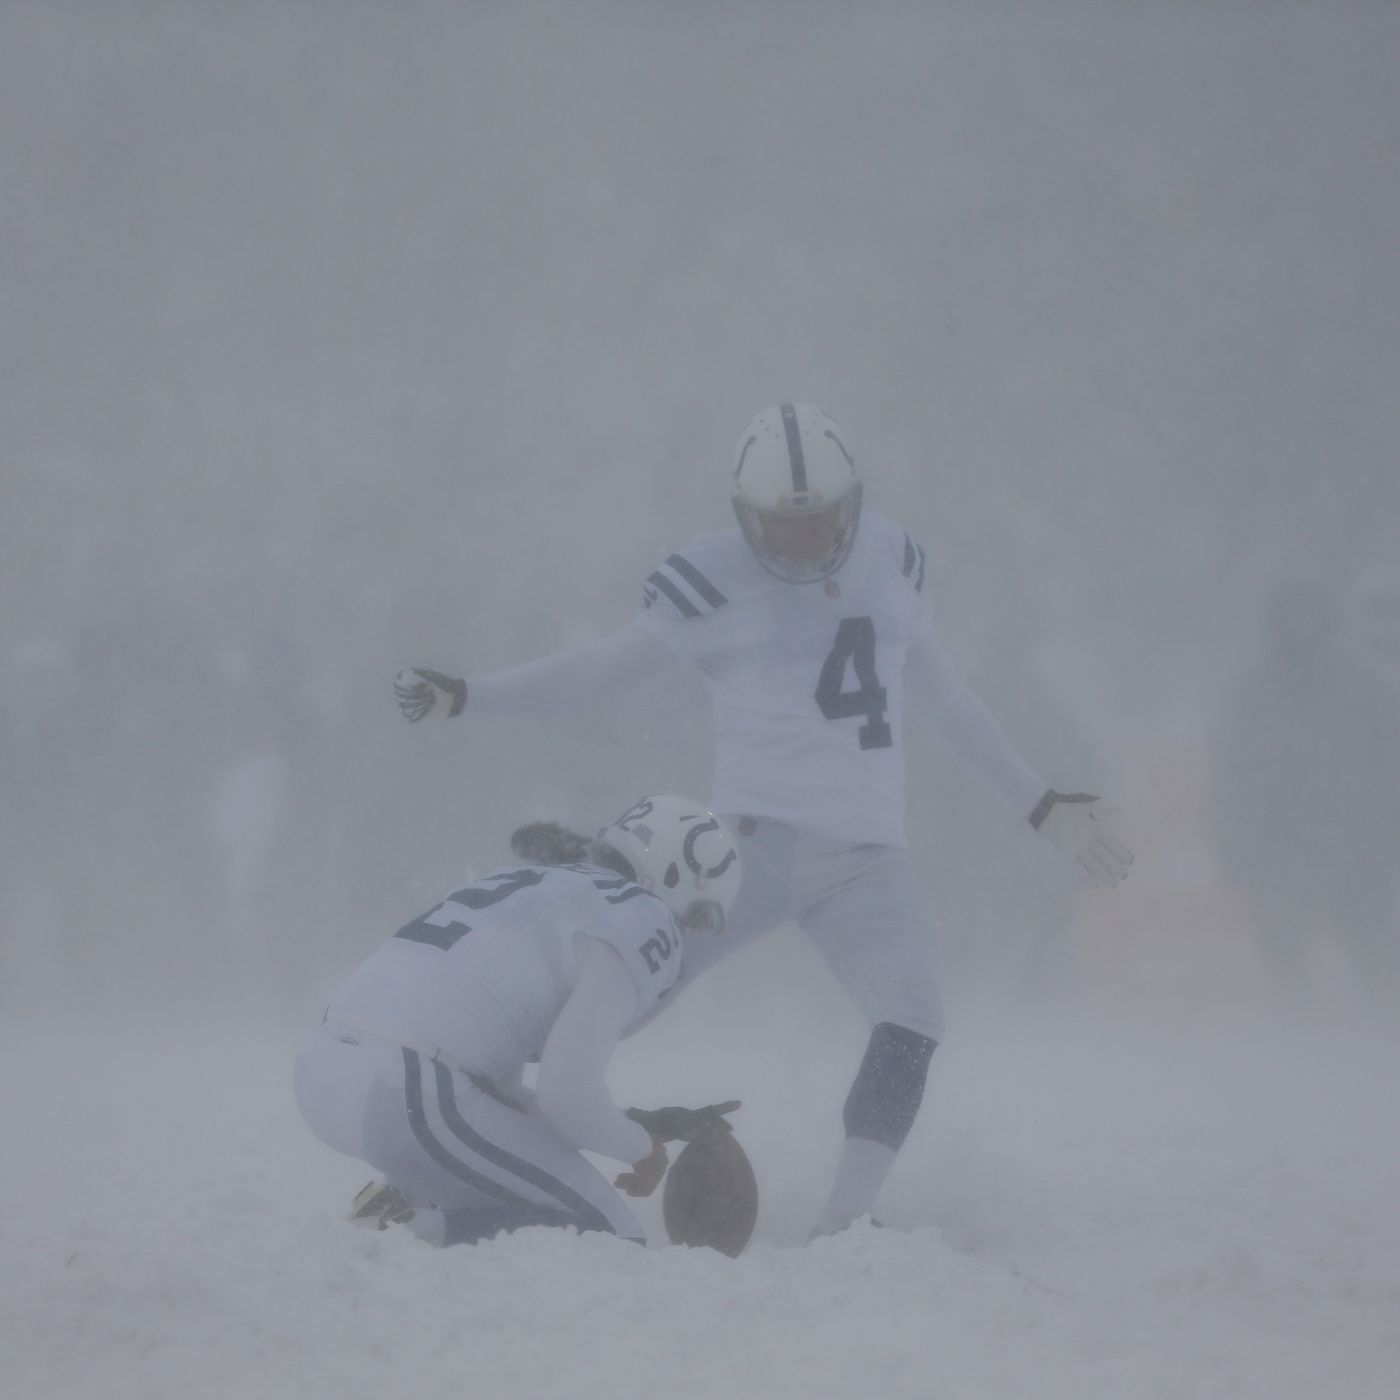 New Rule Added To Address Snow Removal In Wake Of Buffalo Bills Indianapolis Colts Snowvertime Game Buffalo Rumblings